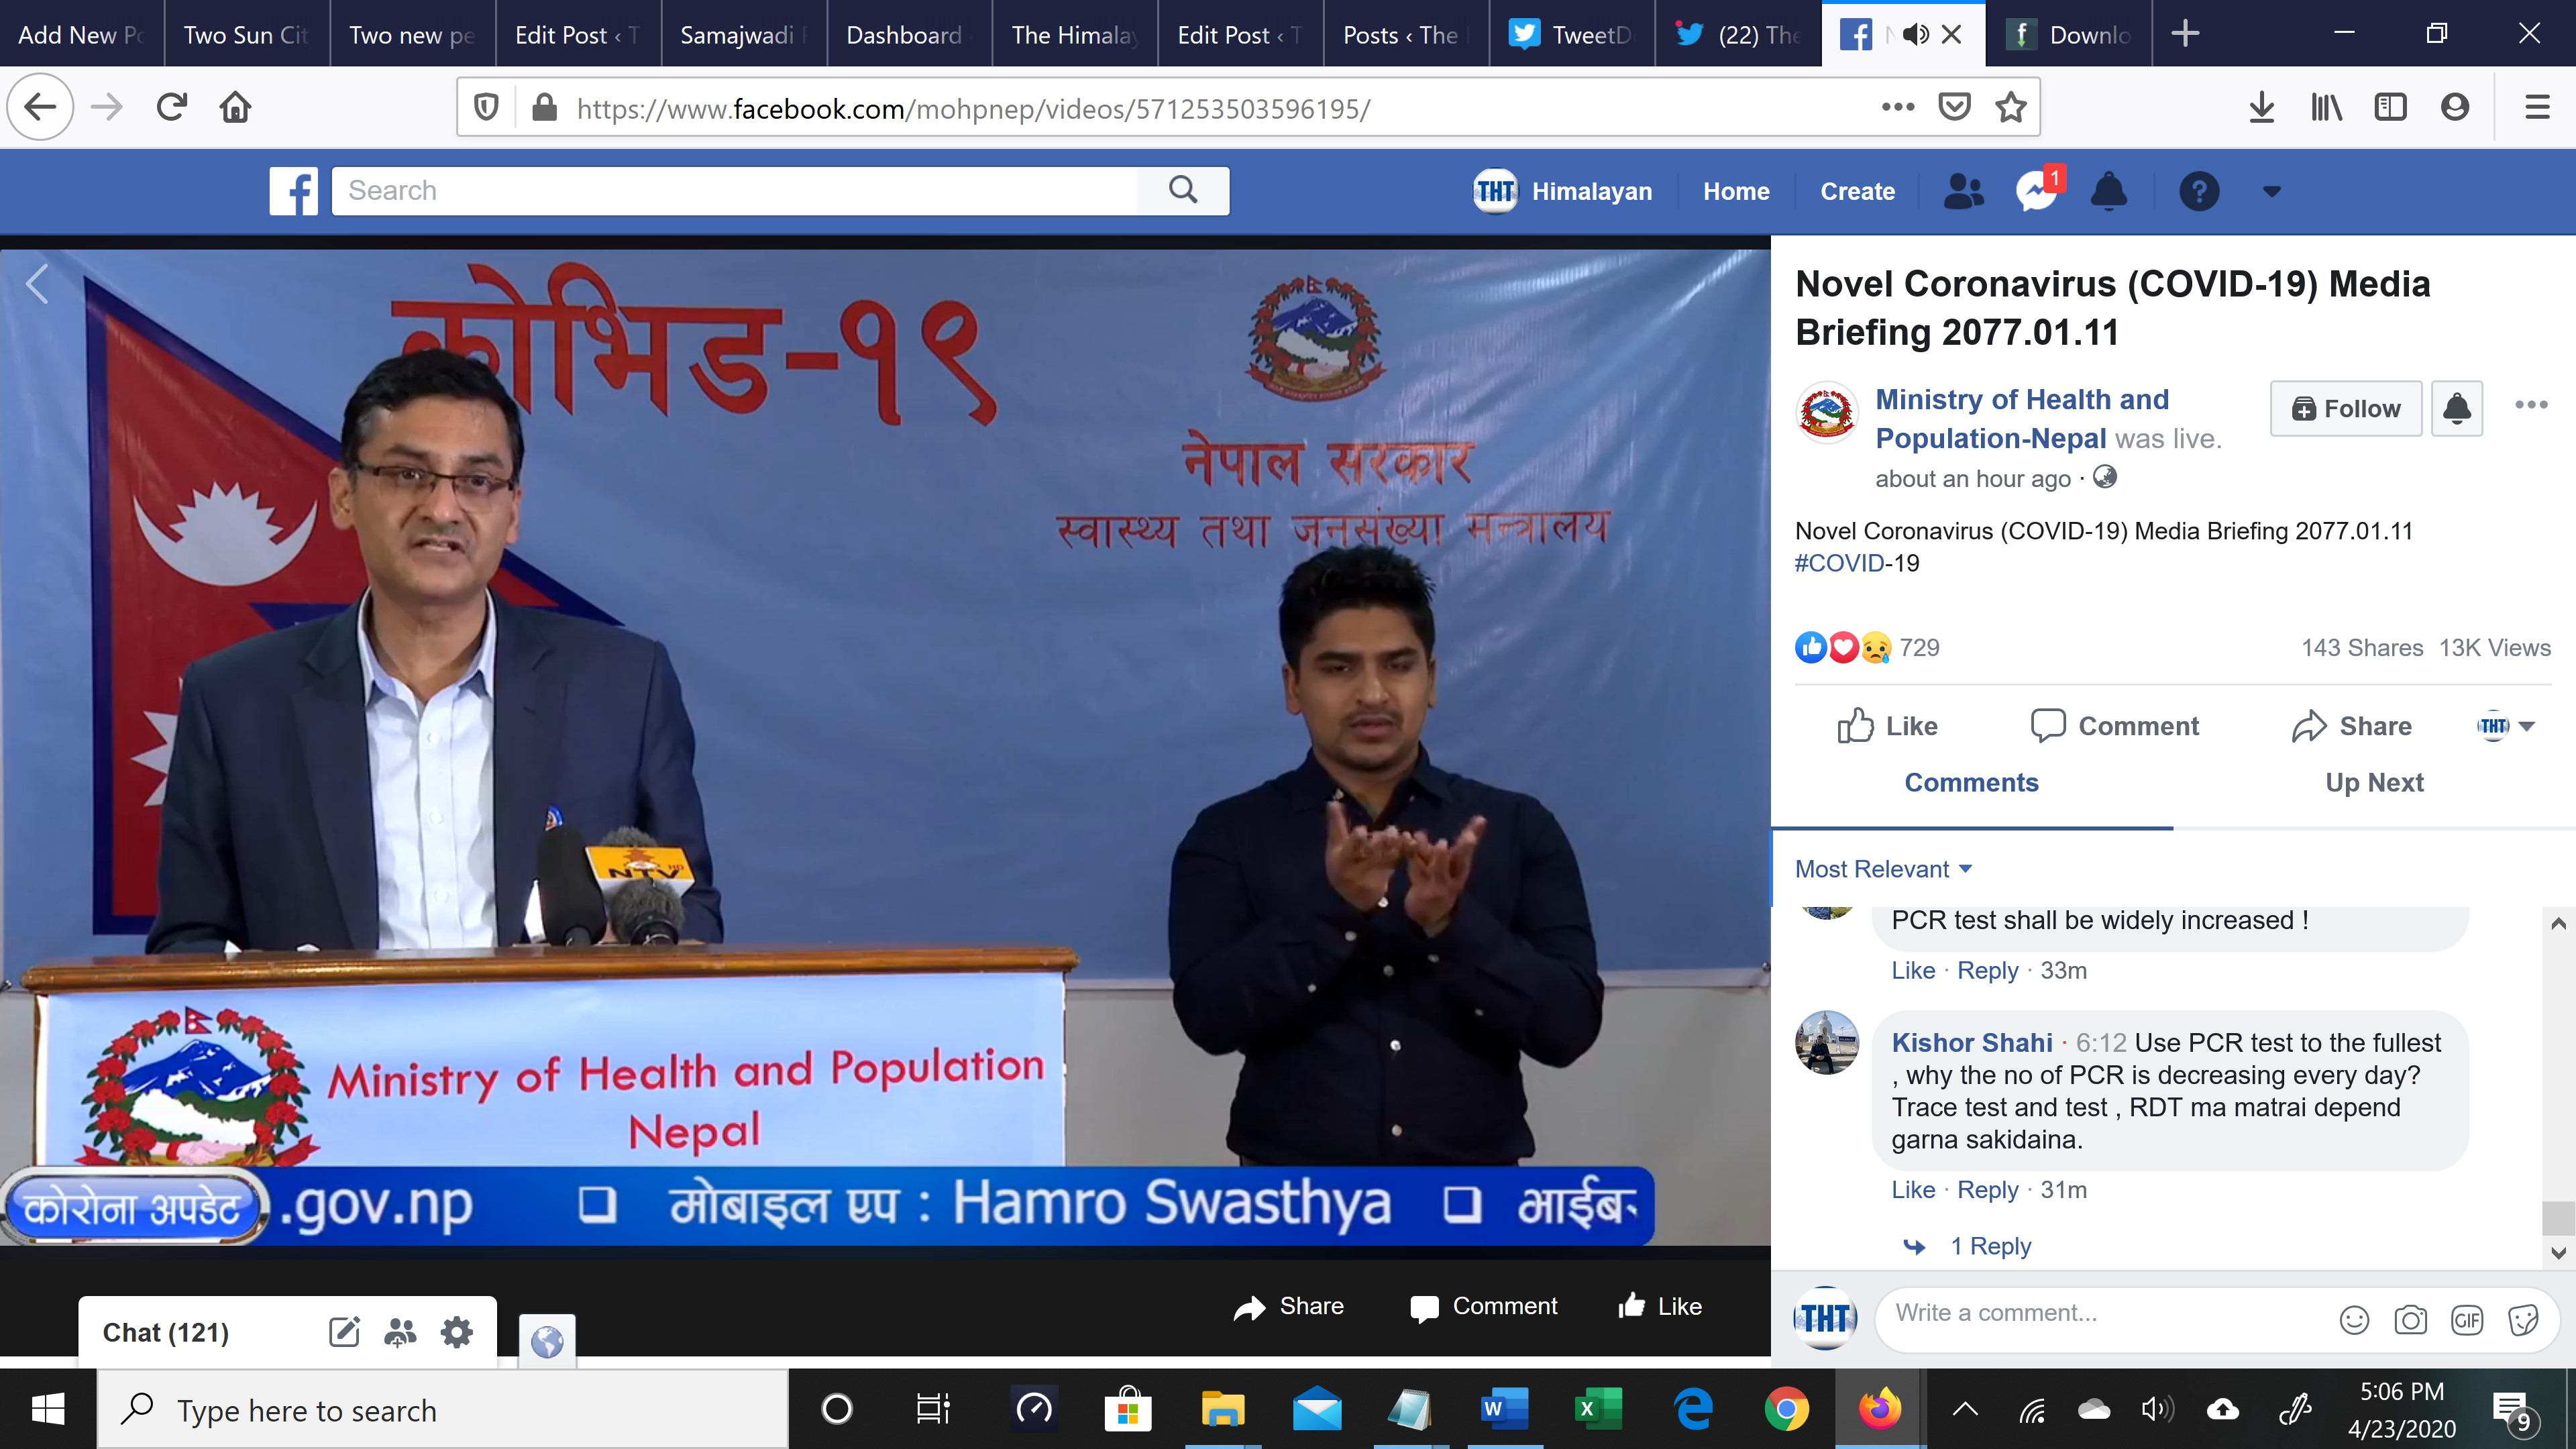 A screenshot of media briefing on COVID-19 by the Ministry of Health and Population (MoHP), on Thursday, April 23, 2020.